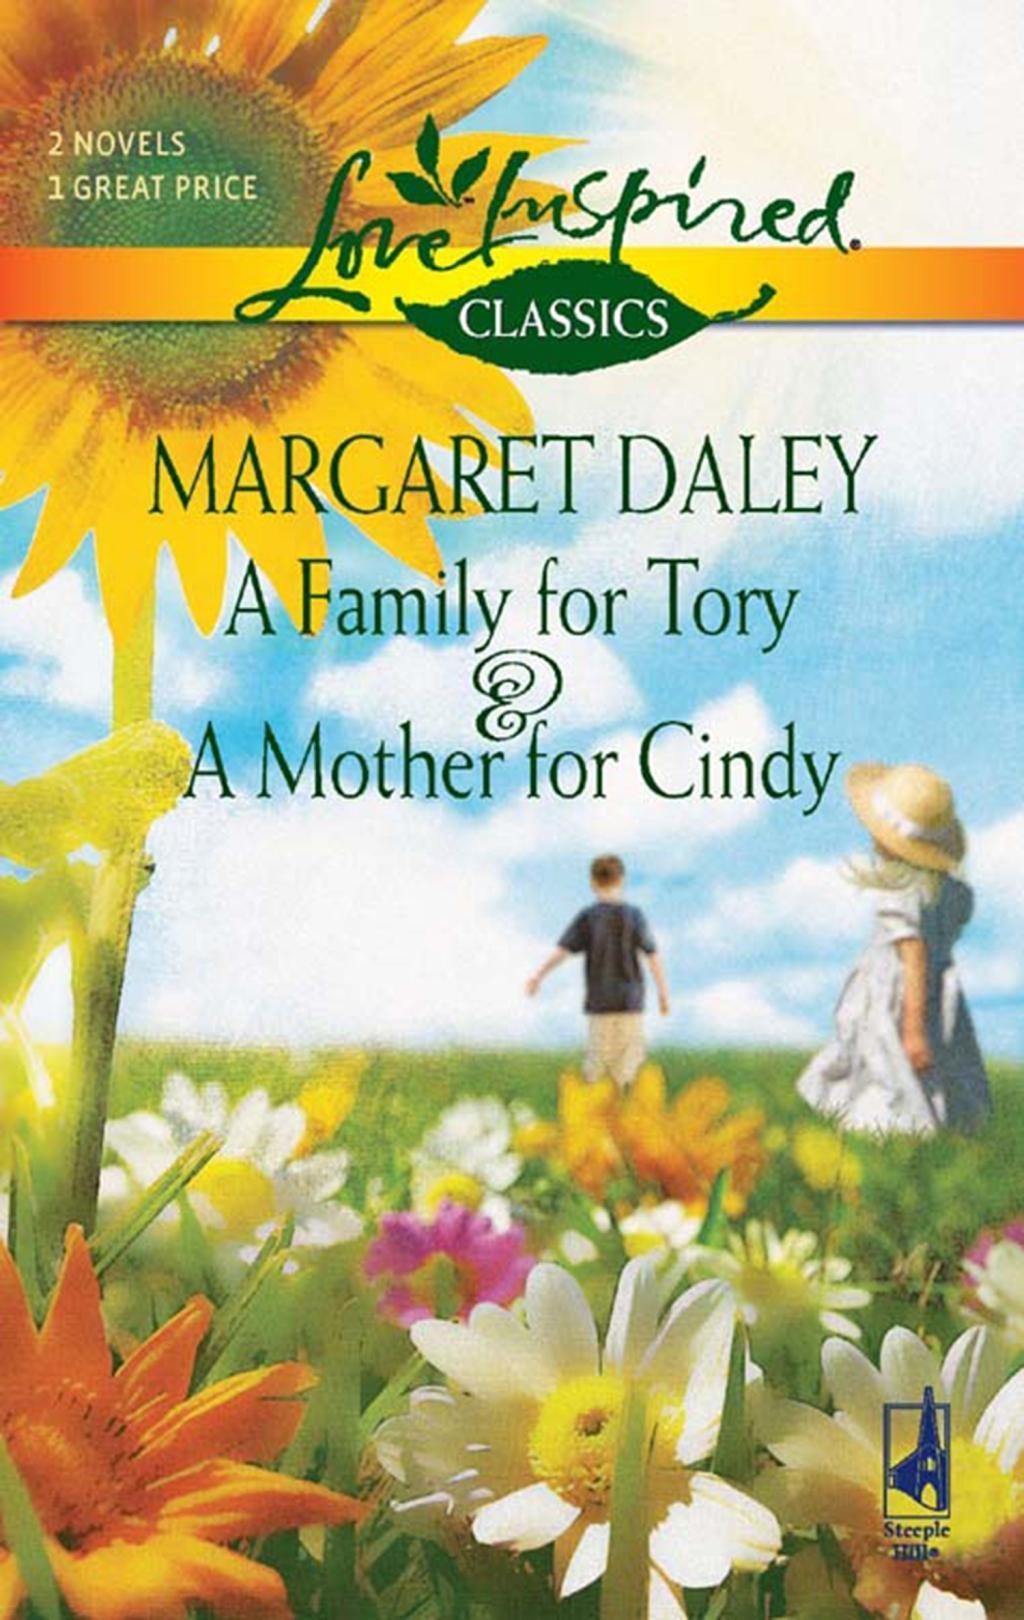 A Family for Tory and A Mother for Cindy: A Family for Tory / A Mother for Cindy (Mills & Boon Love Inspired)